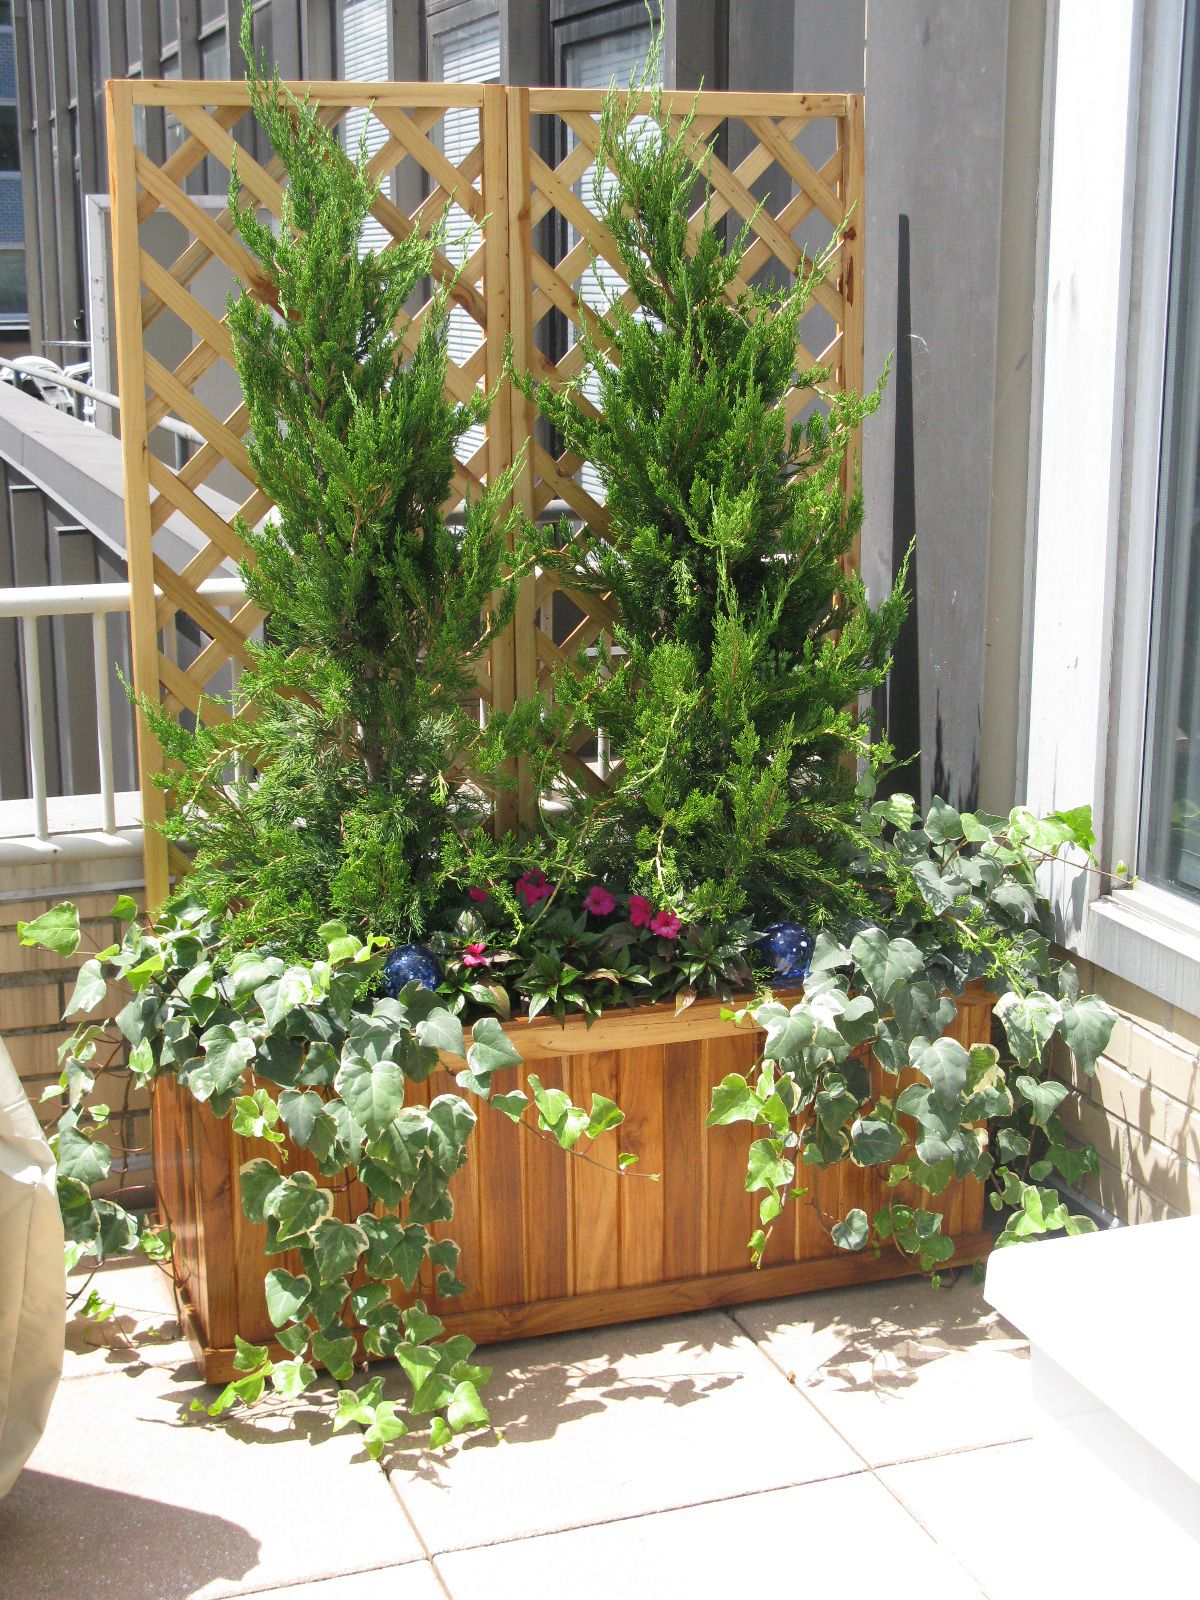 beautifully crafted containers with lattices for climbing plants are a great way to transform